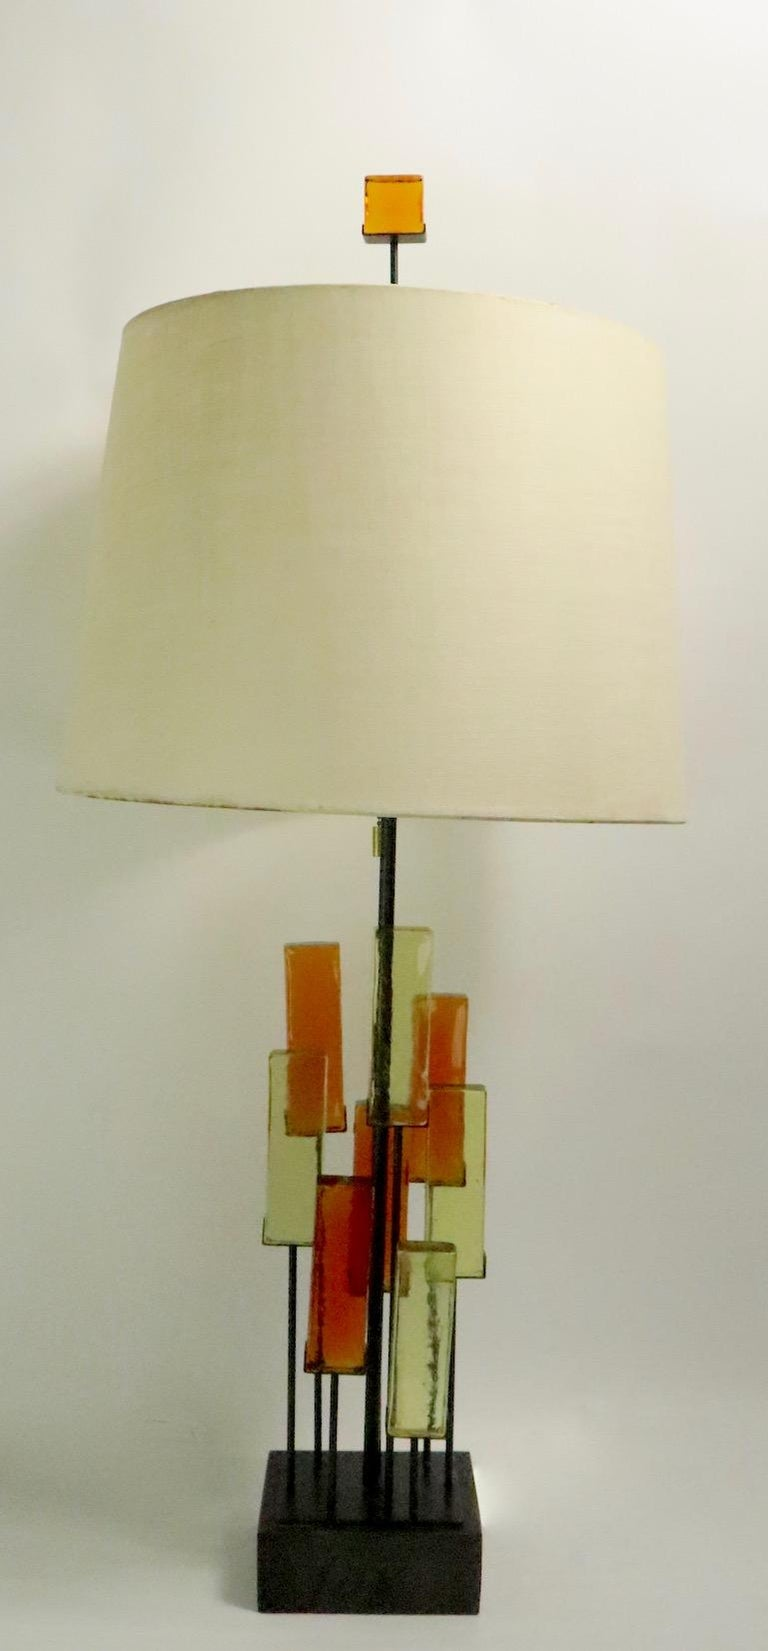 Brutalist Glass Block Table Lamp Attributed to Thurston for Lightolier For Sale 7